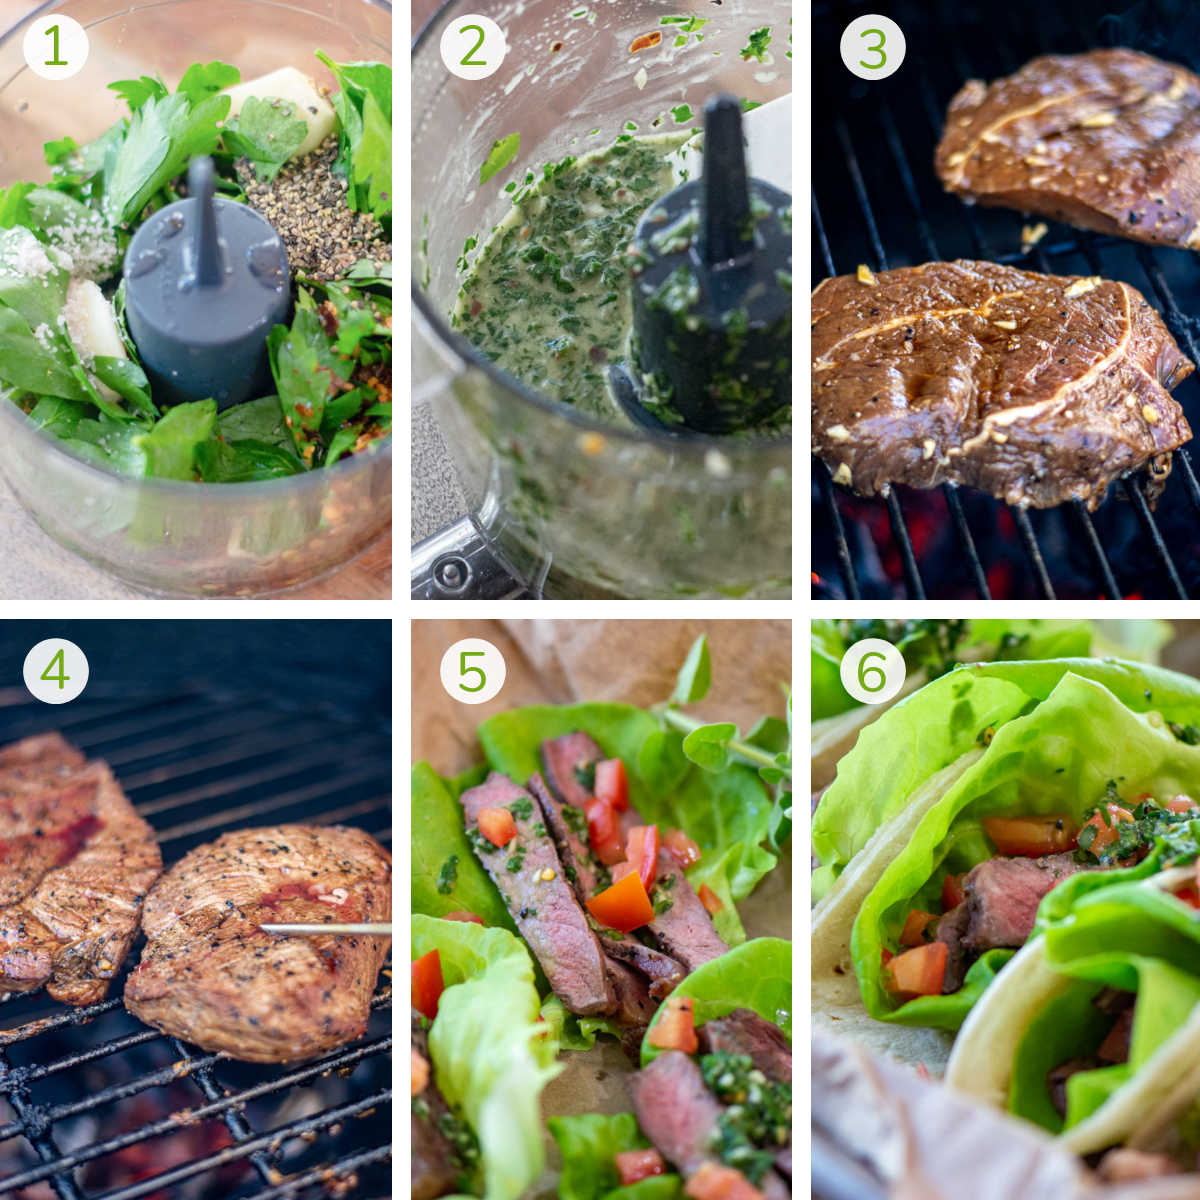 process photos showing making the chimichurri and grilling the sirloin steaks.